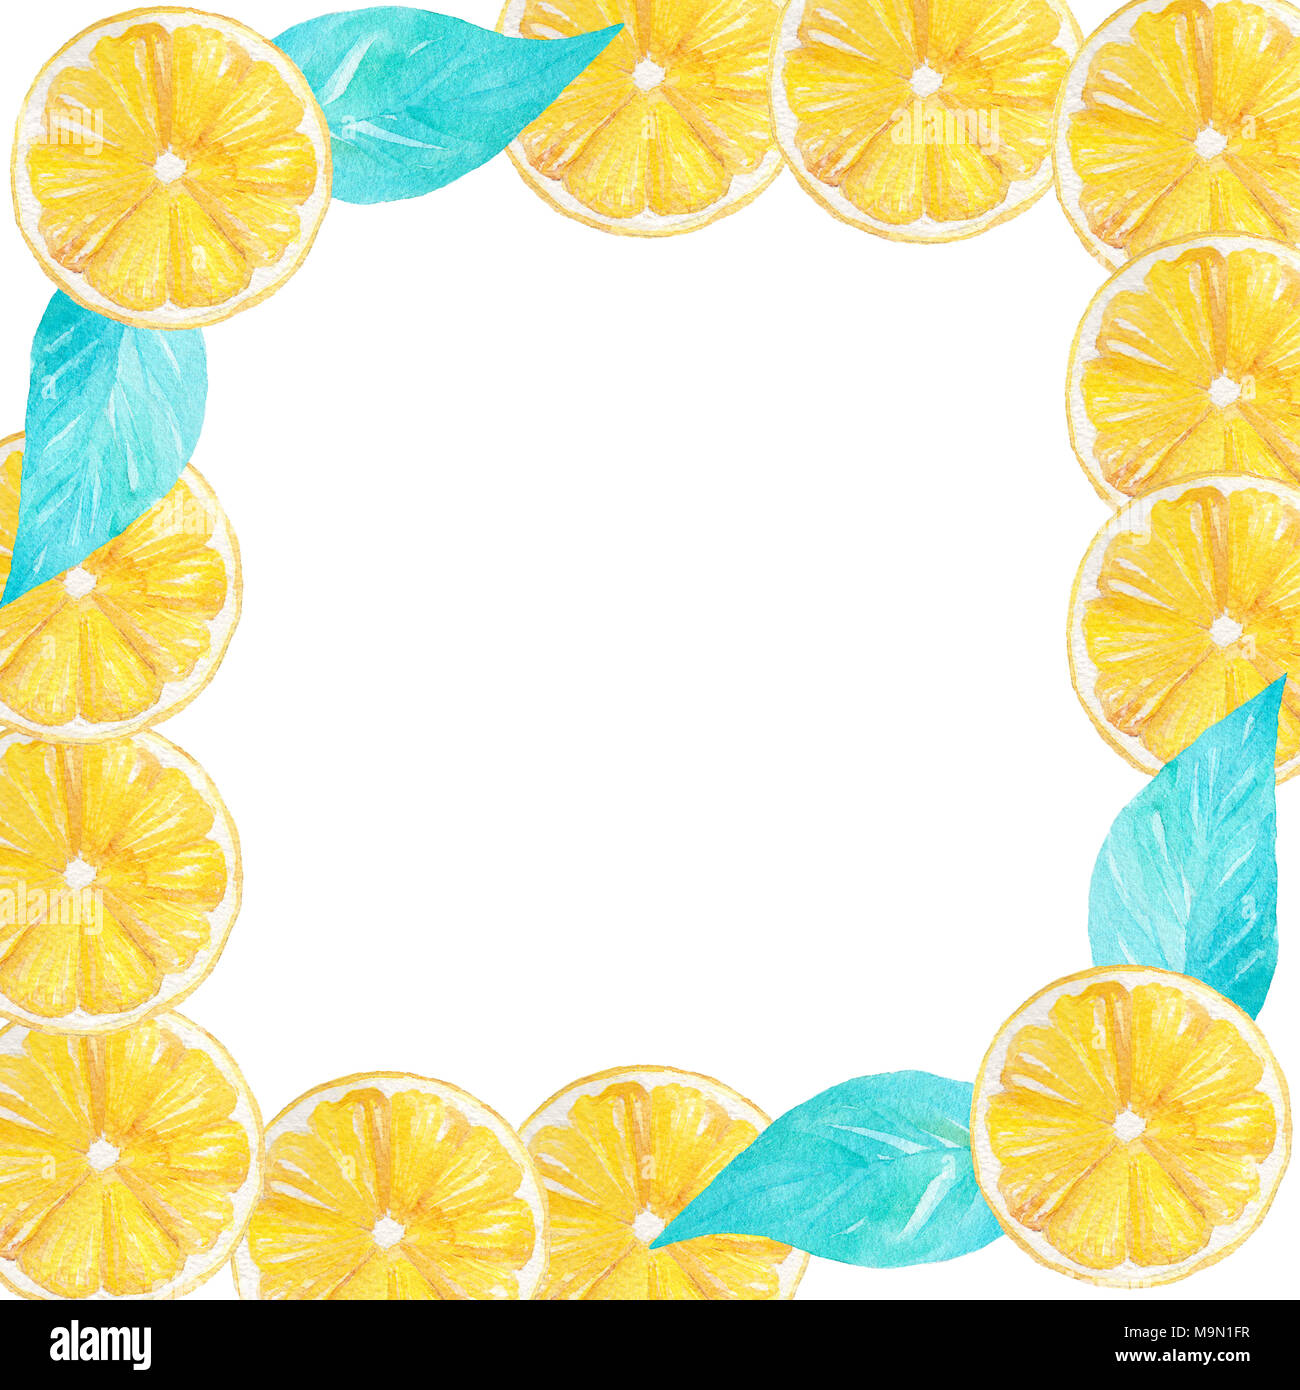 watercolor handmade lemon yellow fruit frame border can be used for invitations decorations cards wallpapers menu M9N1FR